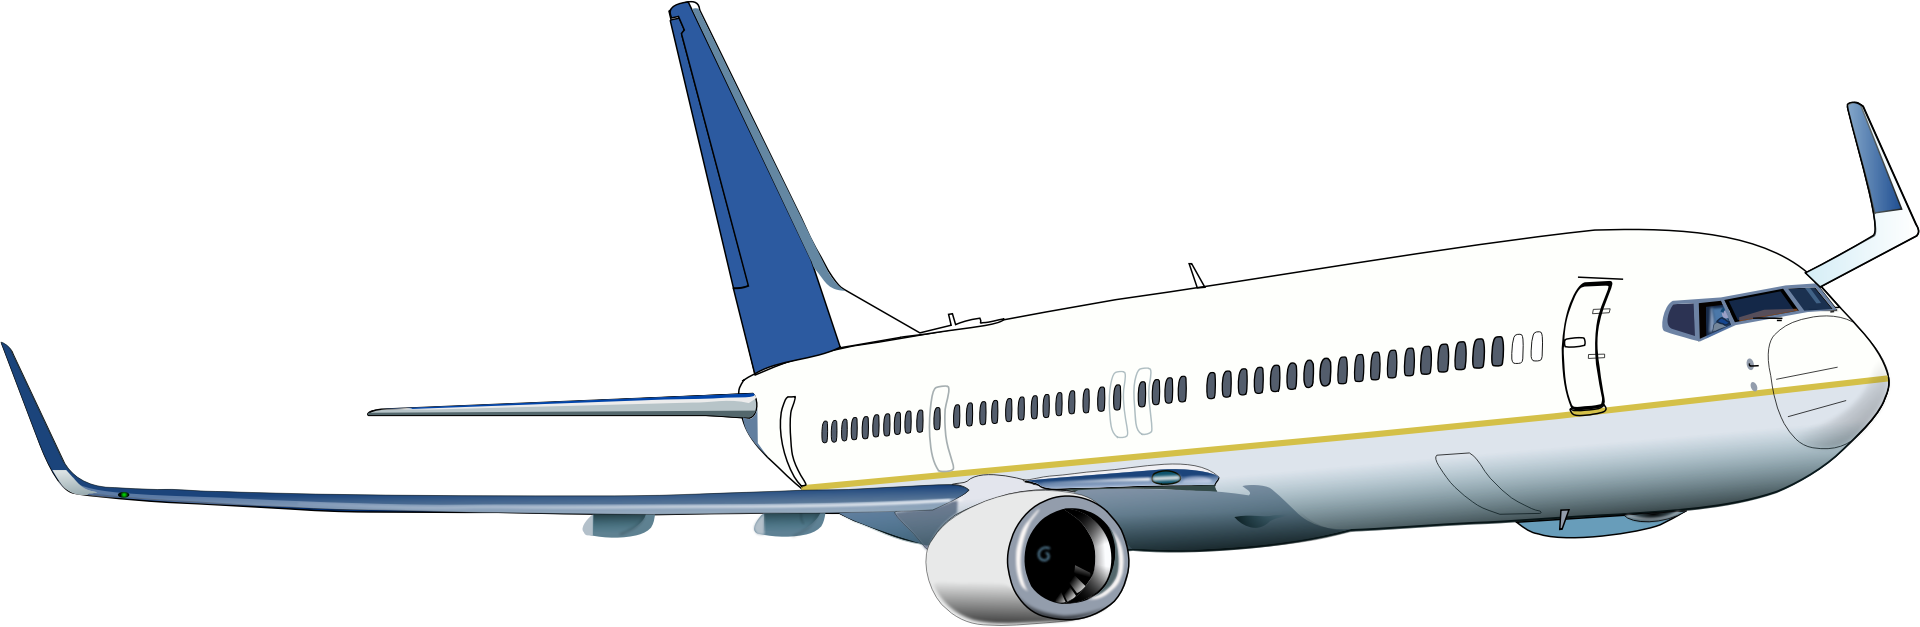 Aircraft clipart boeing 737 Boeing Boeing Clipart 737